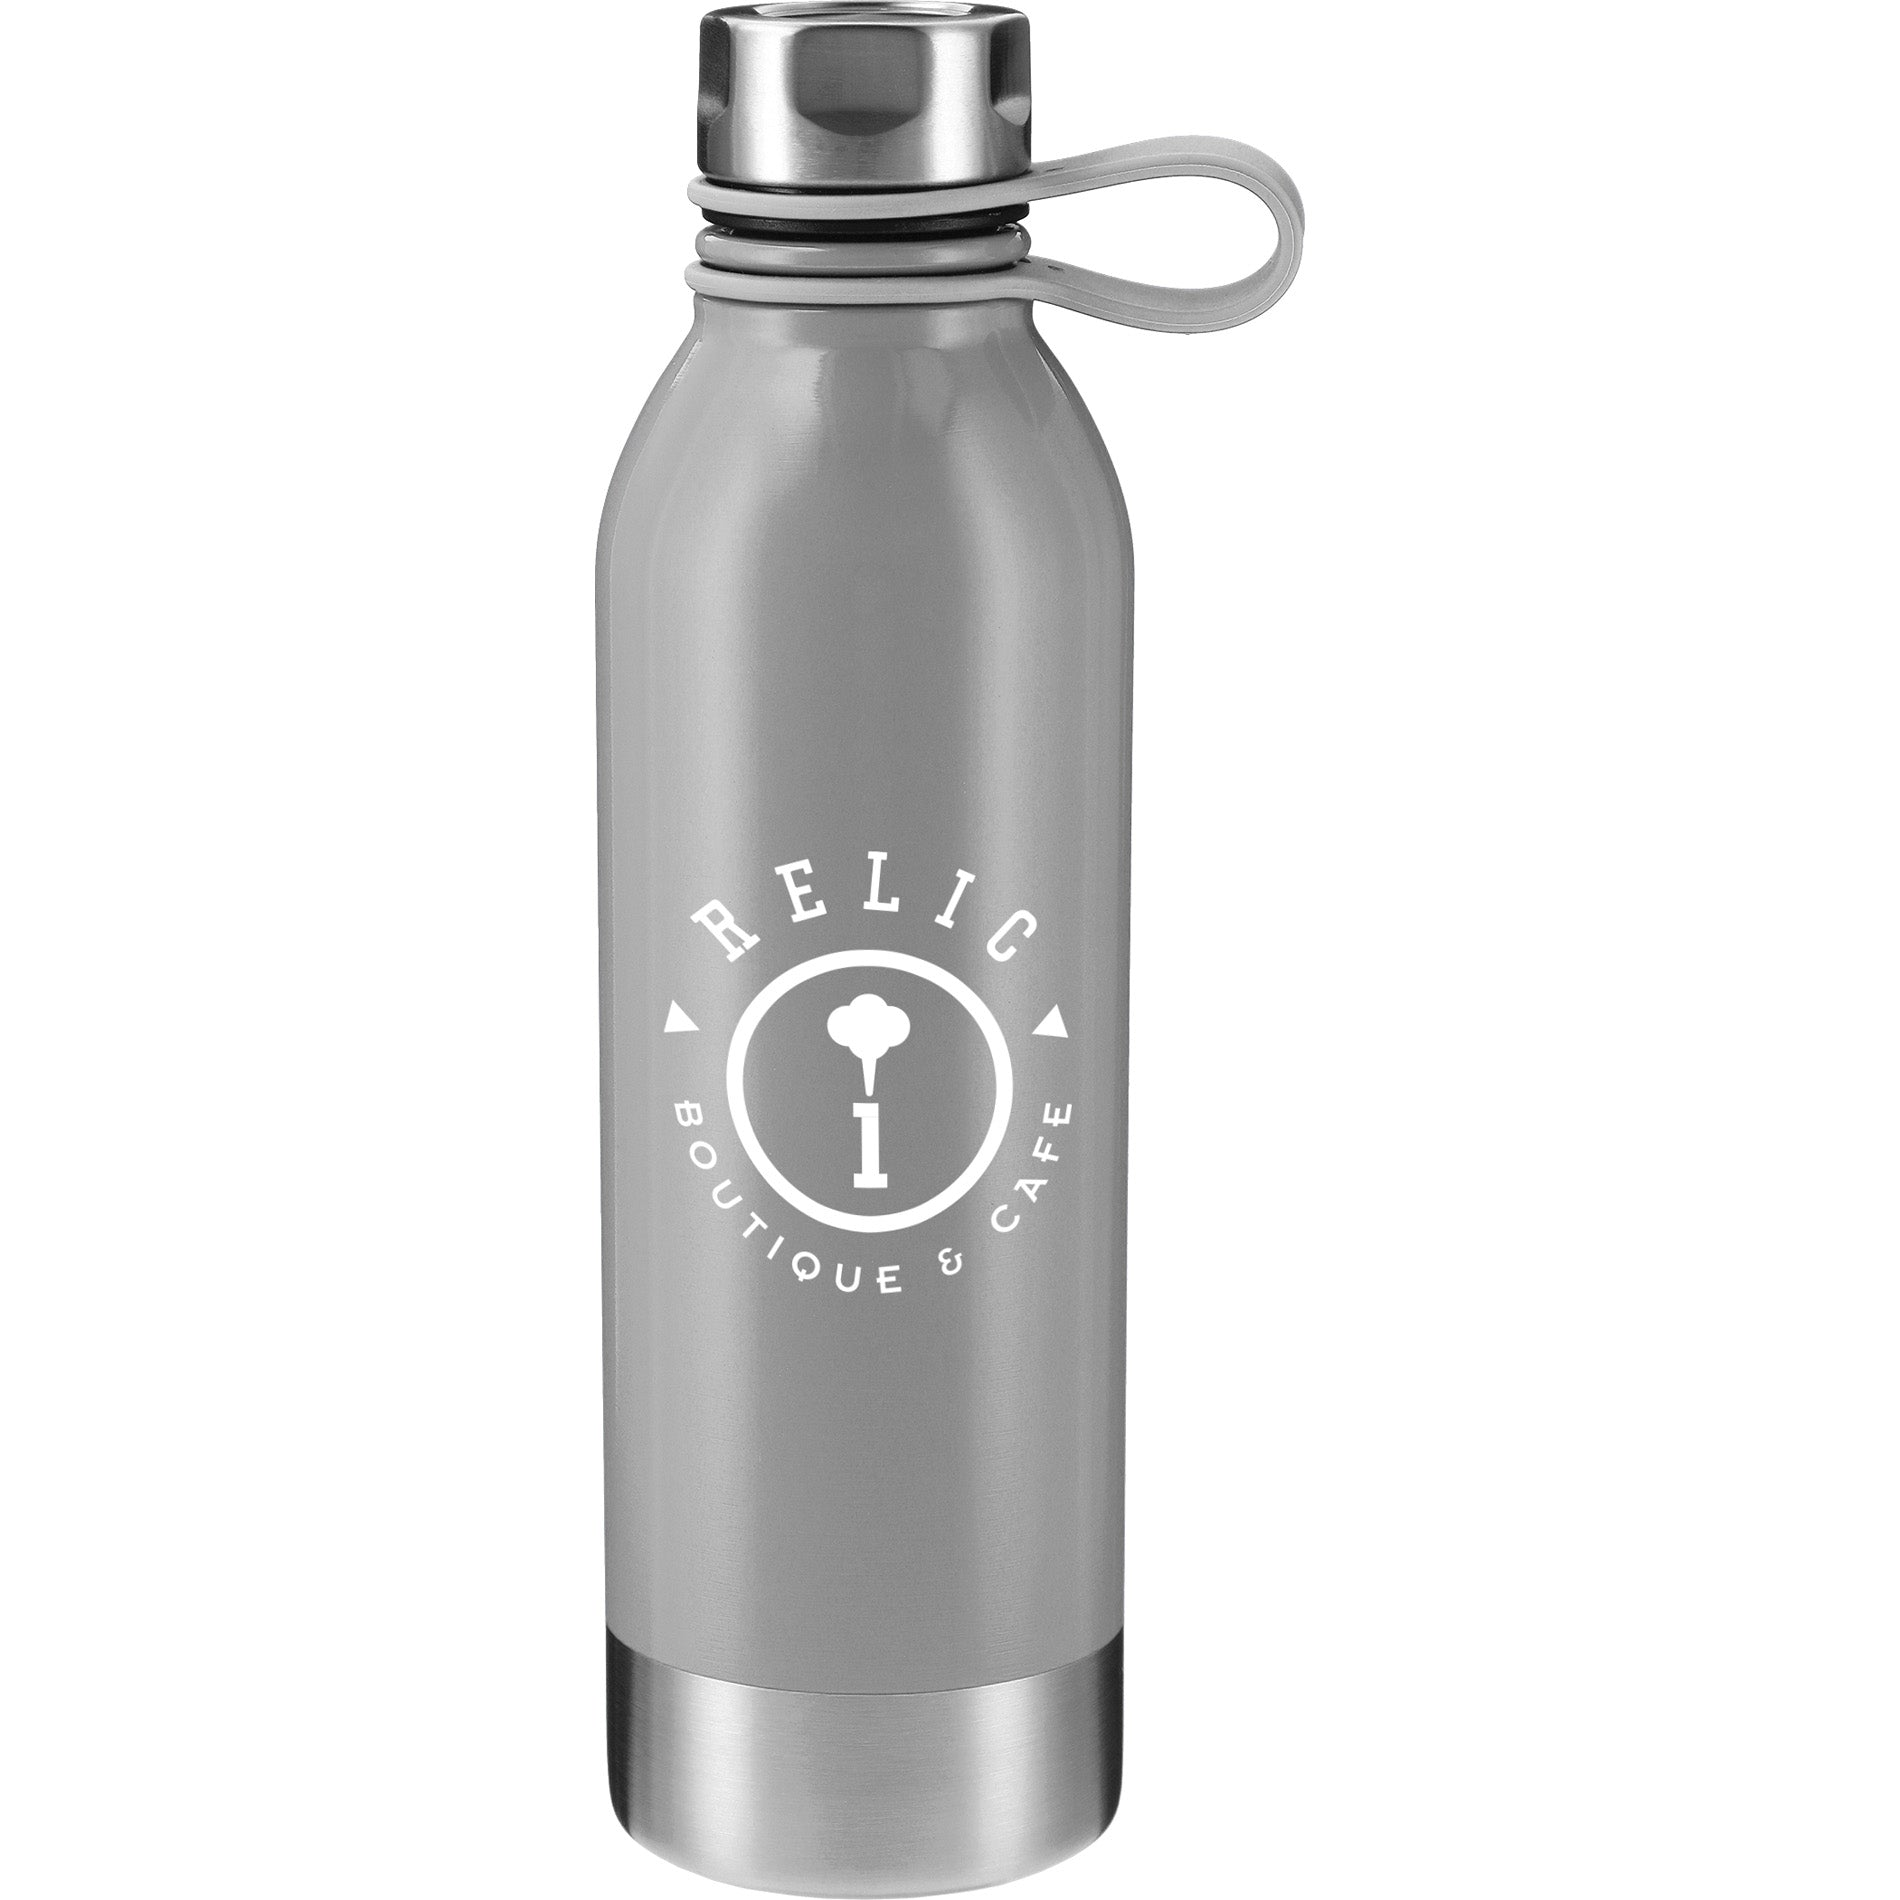 BULLET PERTH 25 OZ. STAINLESS SPORTS WATER BOTTLE